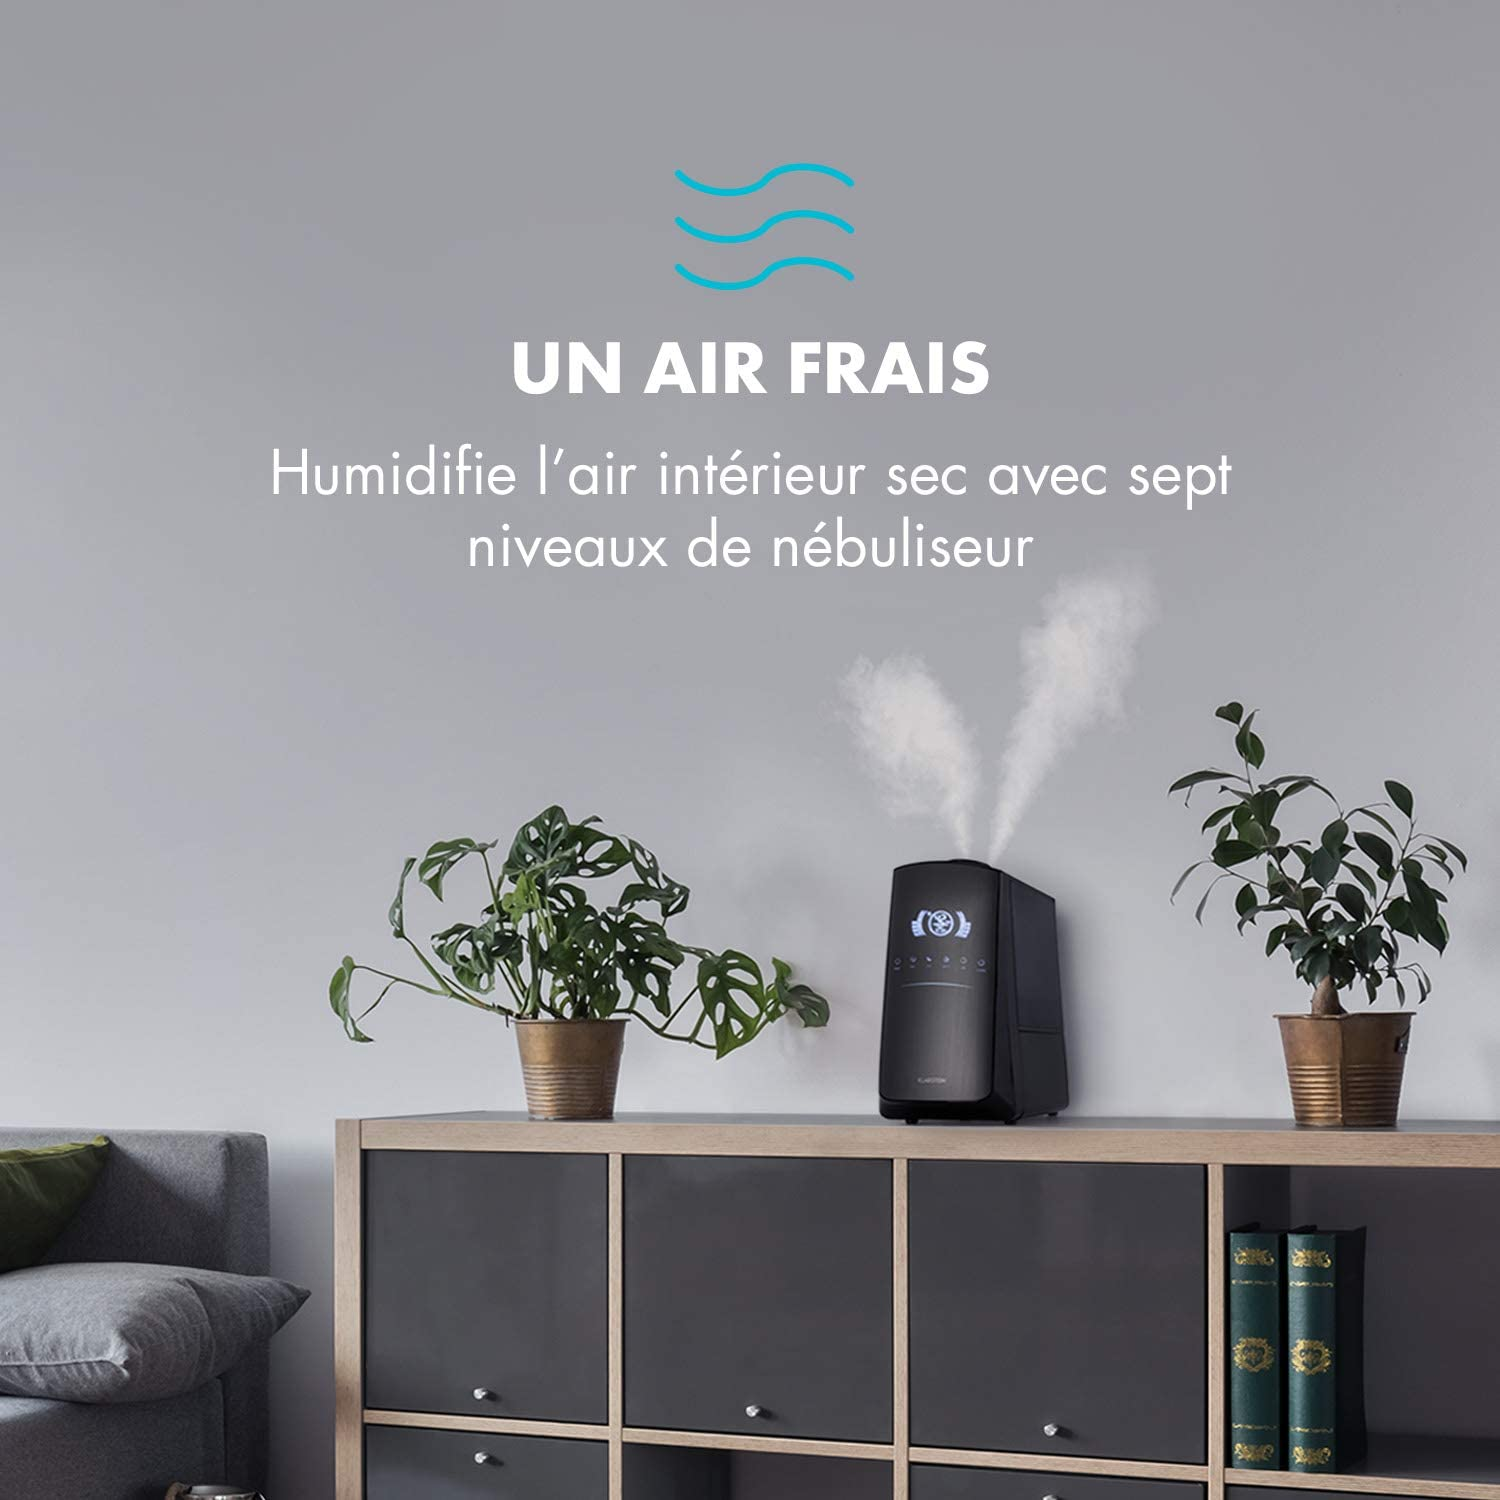 Diffuseur dar/ôme LED Arr/êt Automatique Minuterie 5L KLARSTEIN VapoAir Opal Humidificateur Ioniseur commutable Noir-Anthracite 300 ML//h